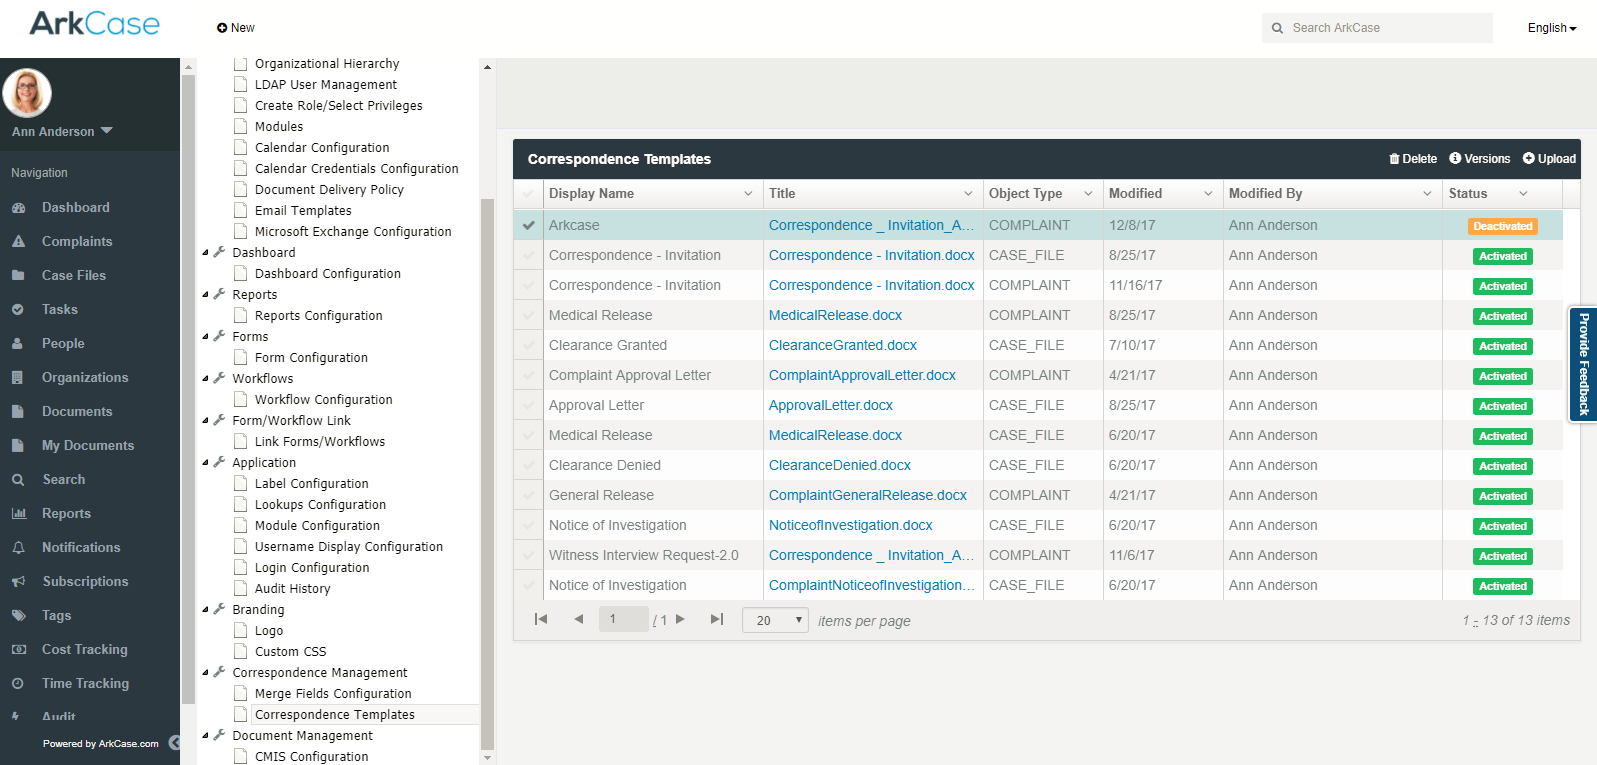 ArkCase v3.2.0 Enhanced Correspondence Management